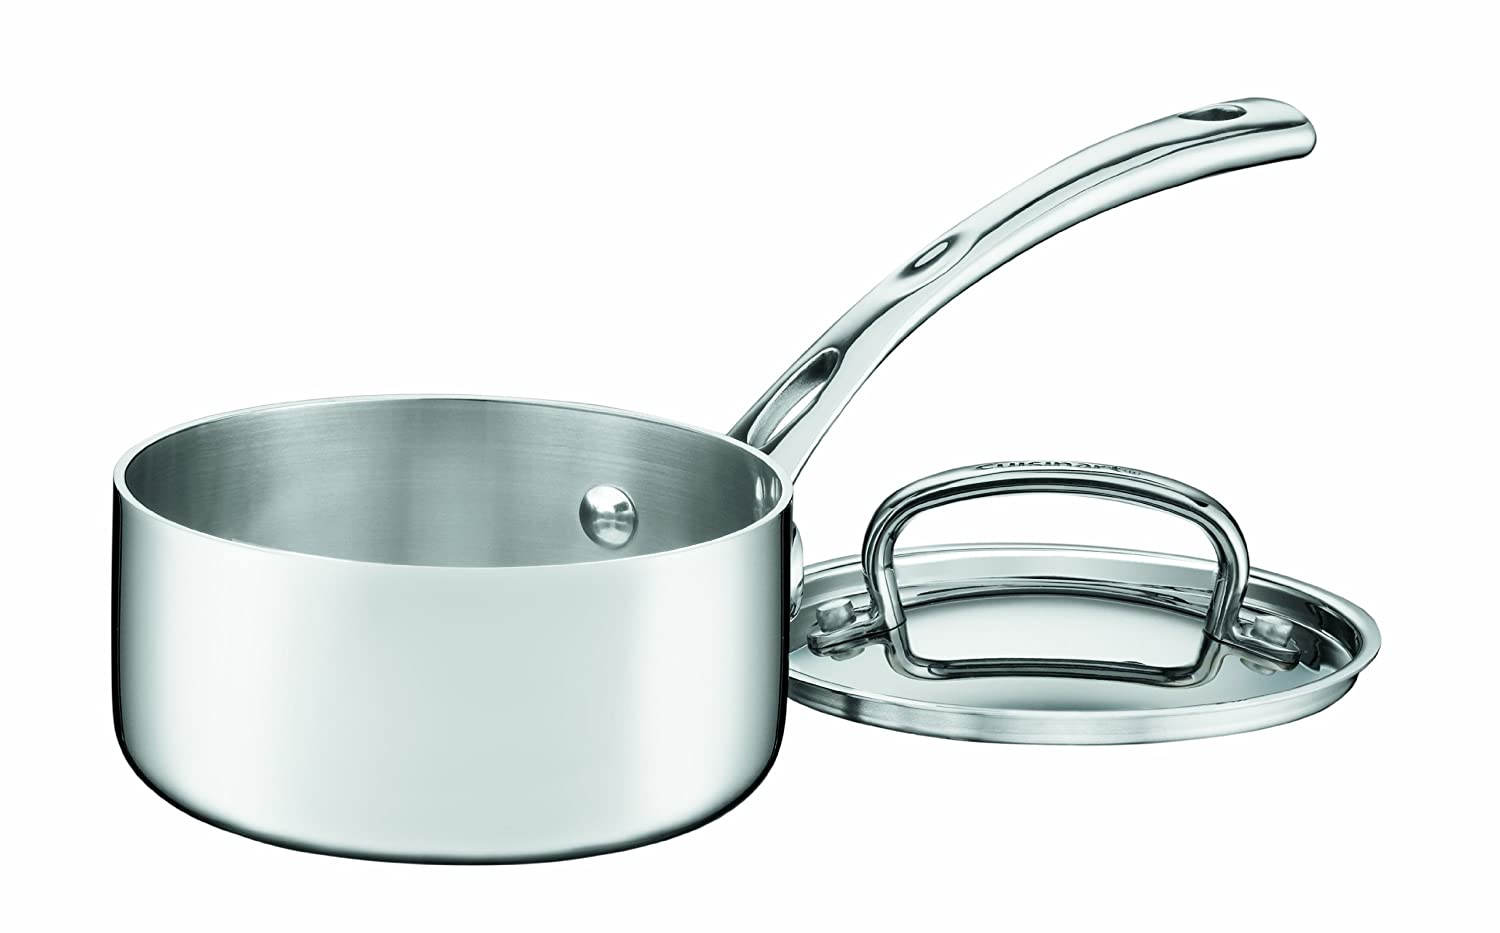 CUISINART FCT19-14 French Classic Tri-Ply Stainless 1-Quart Saucepan with Cover, Silver